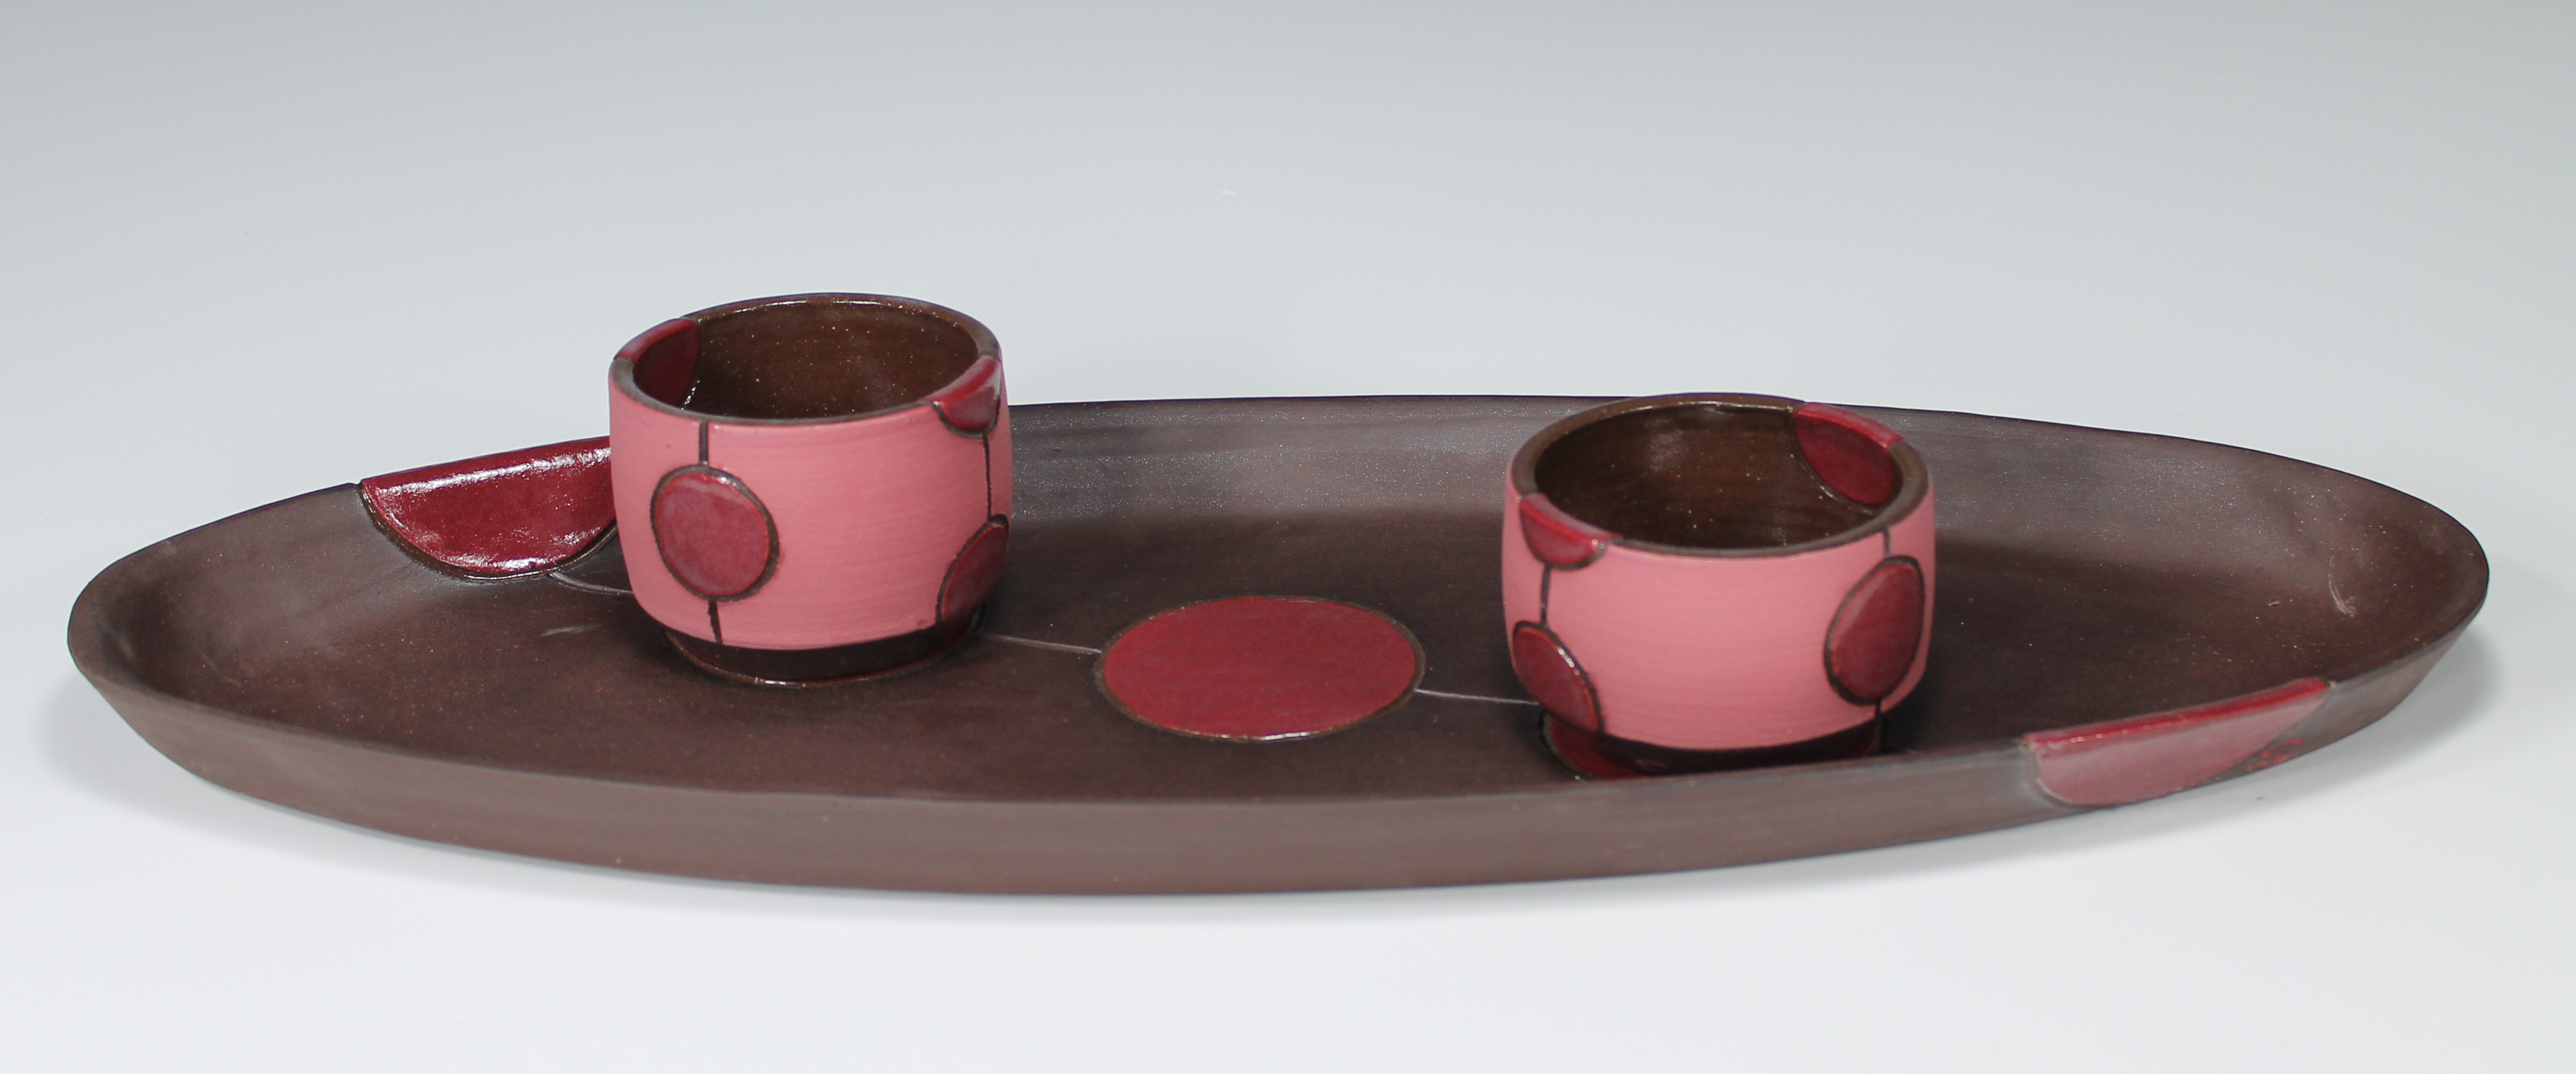 Platter with two dip bowls, 2014